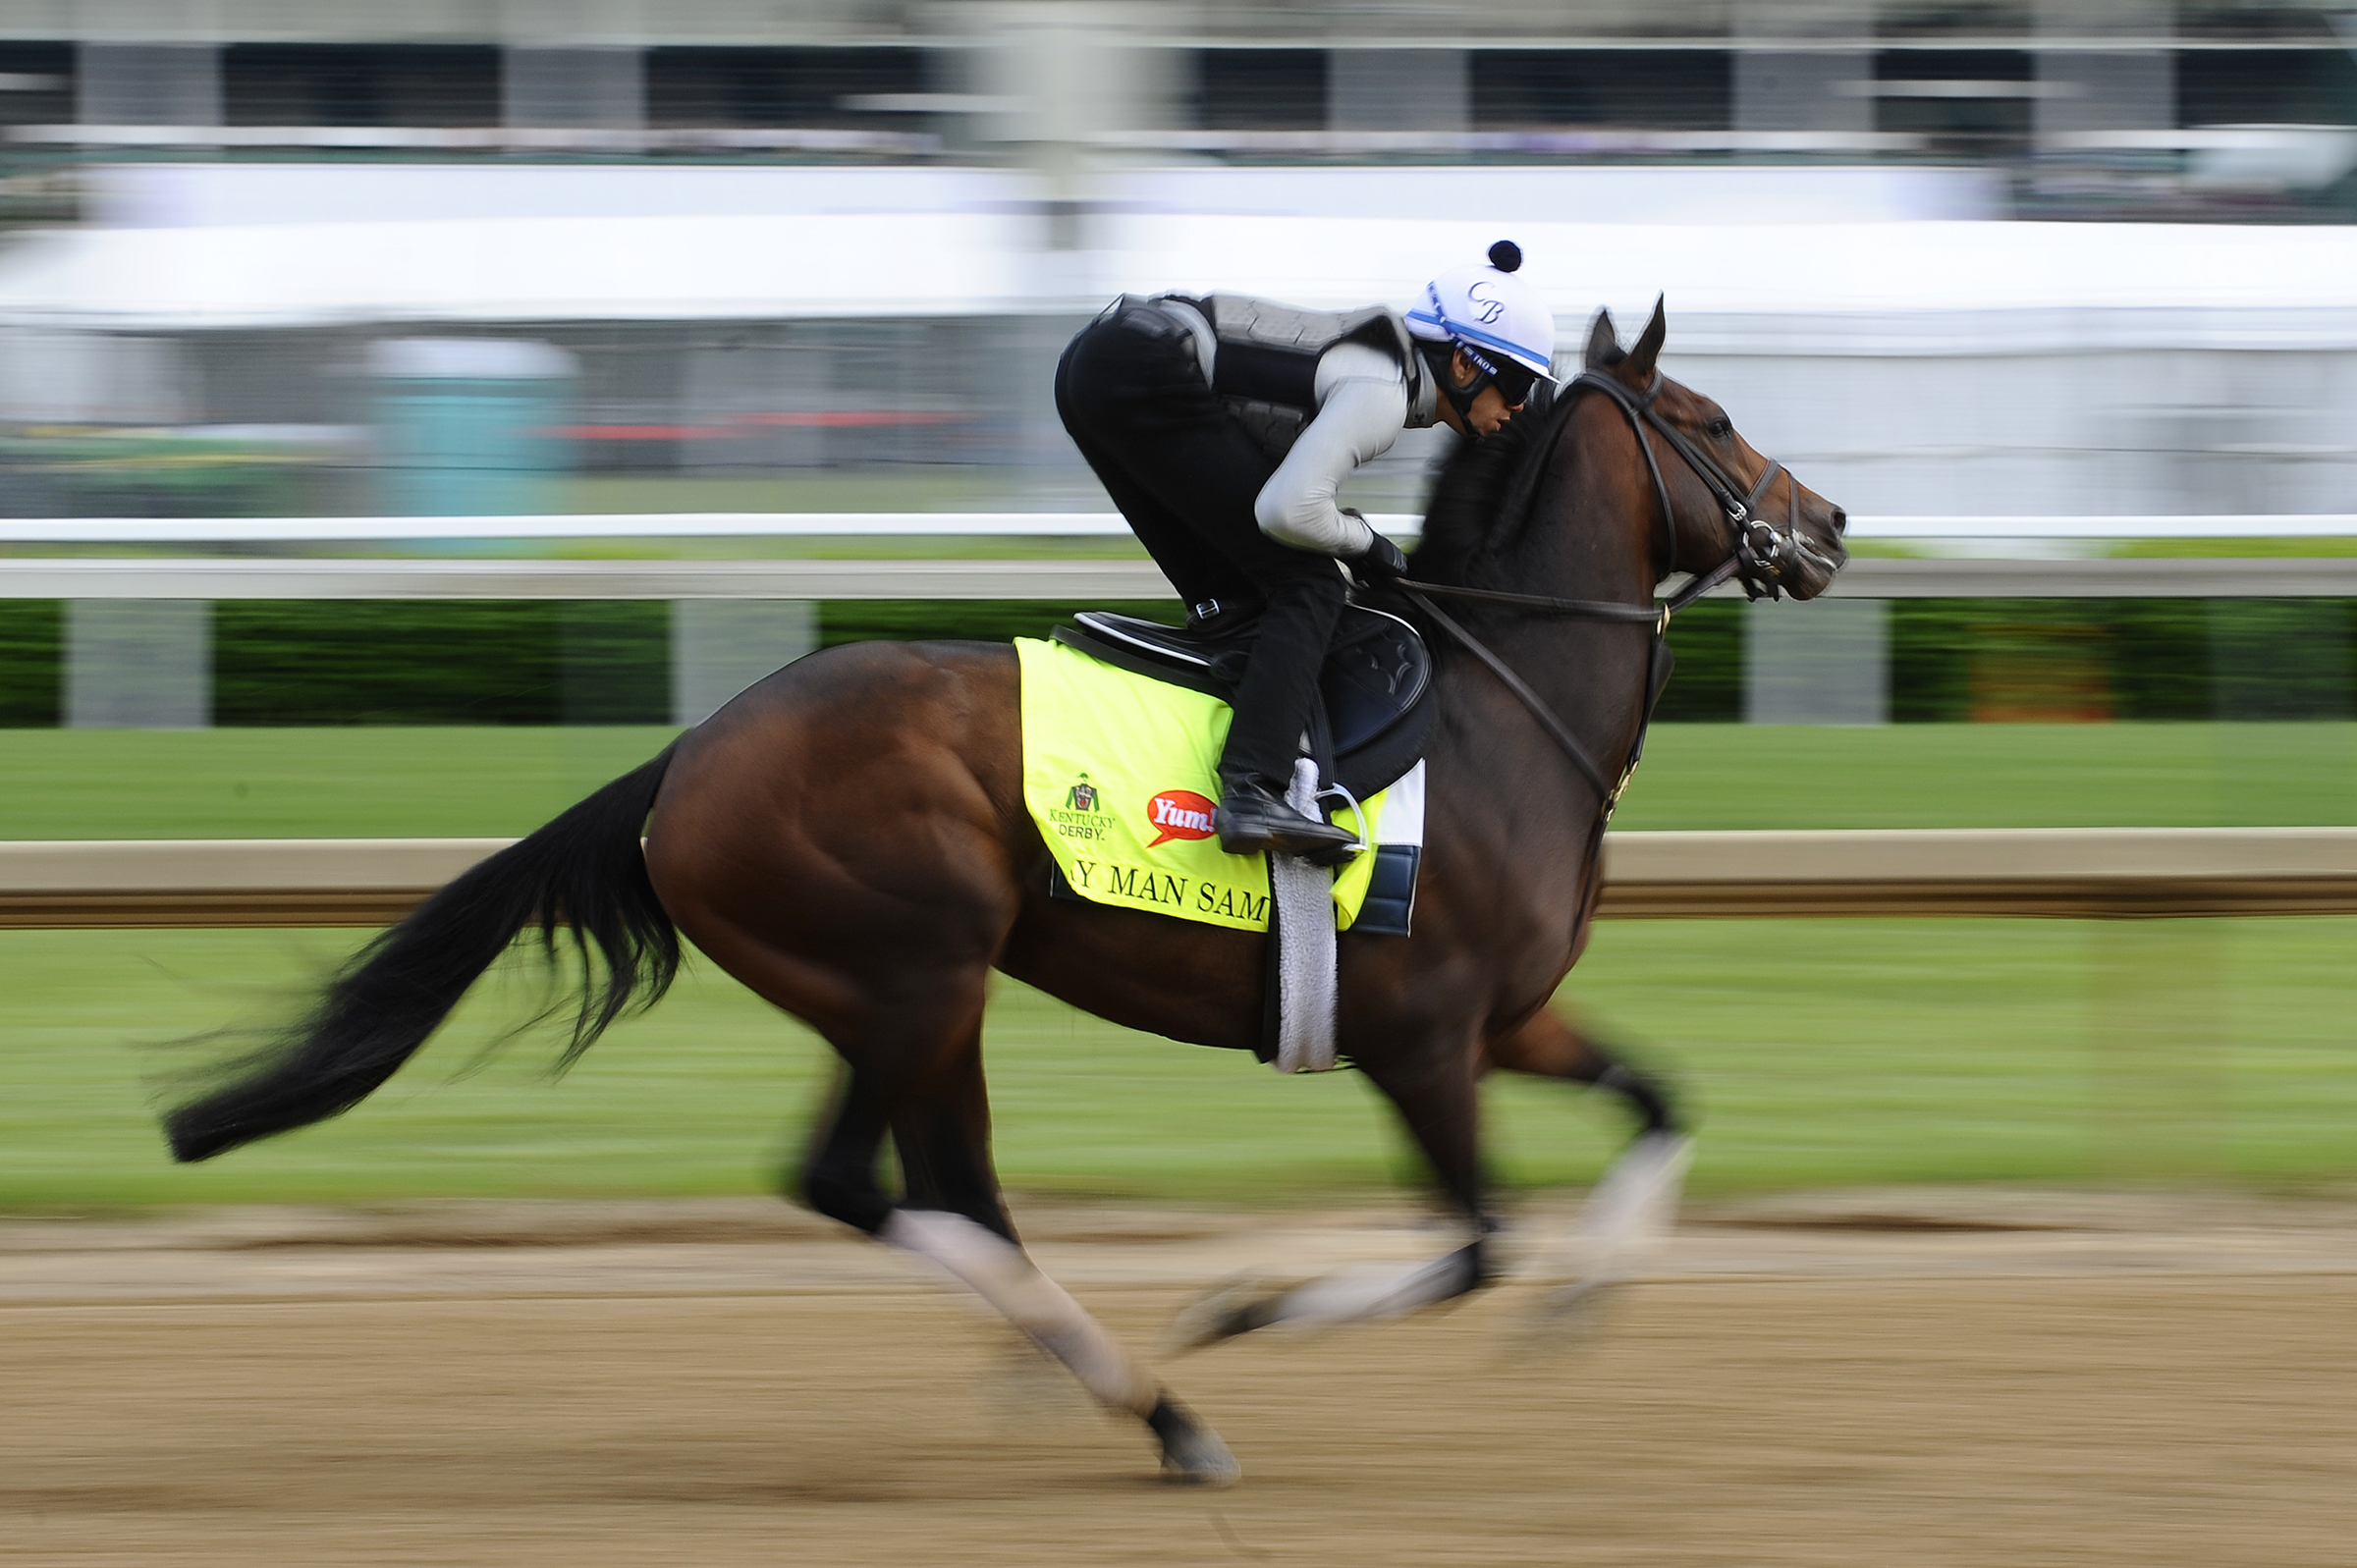 Kentucky Derby horse My Man Sam goes through morning workouts on Wednesday, May 4, 2016, at Churchill Downs racetrack.